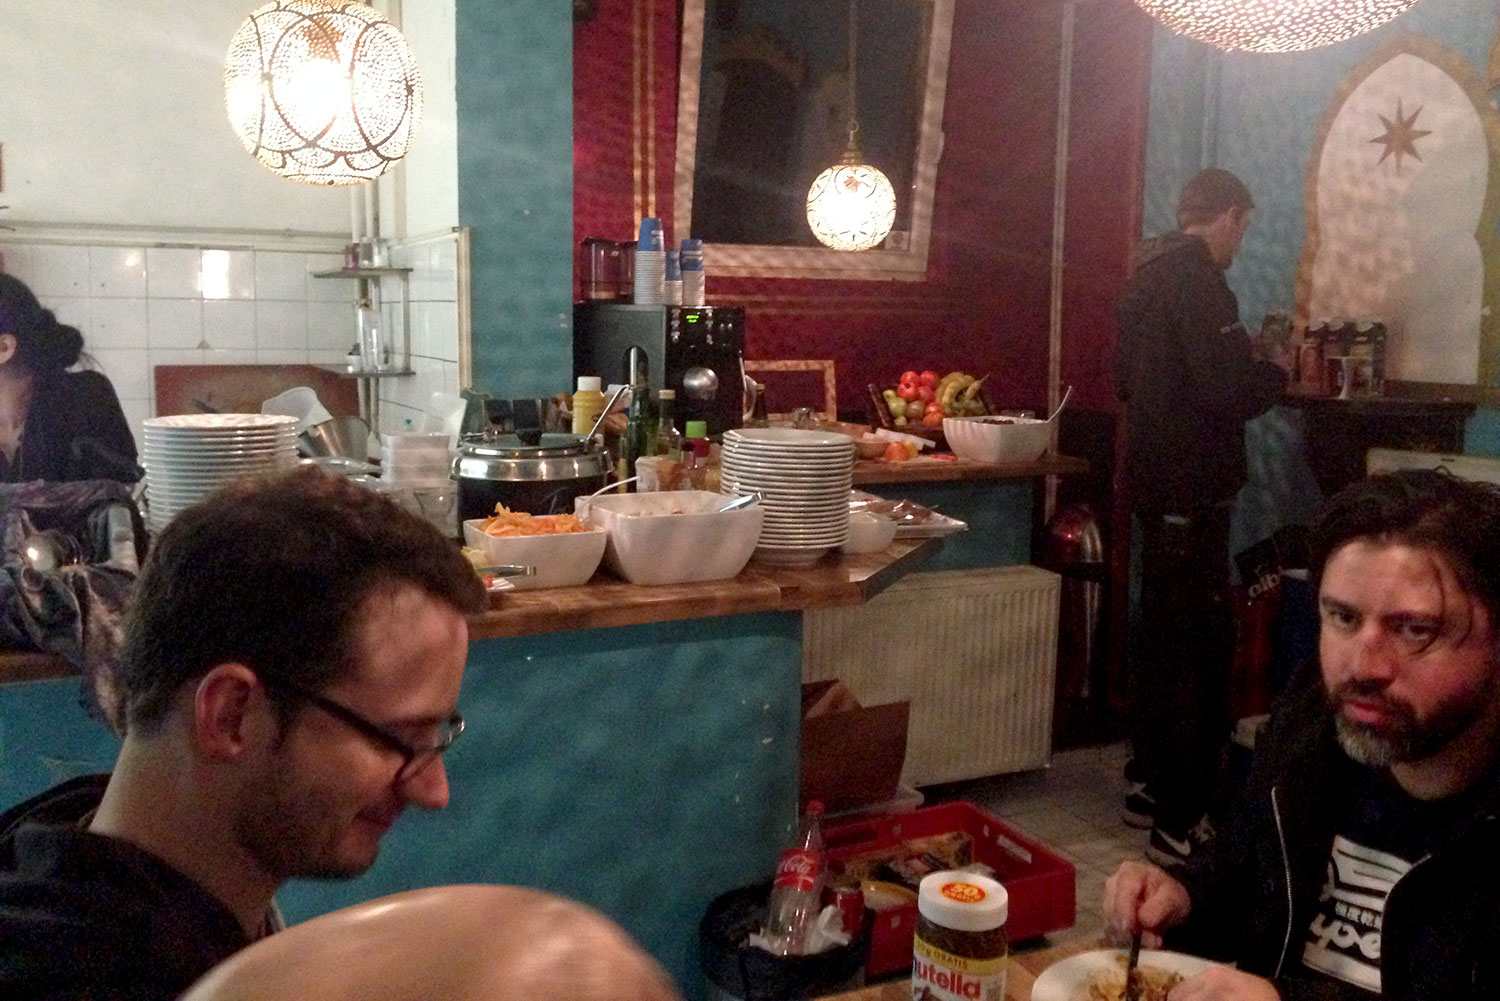 Catering backstage in Hamburg. The food was so good!